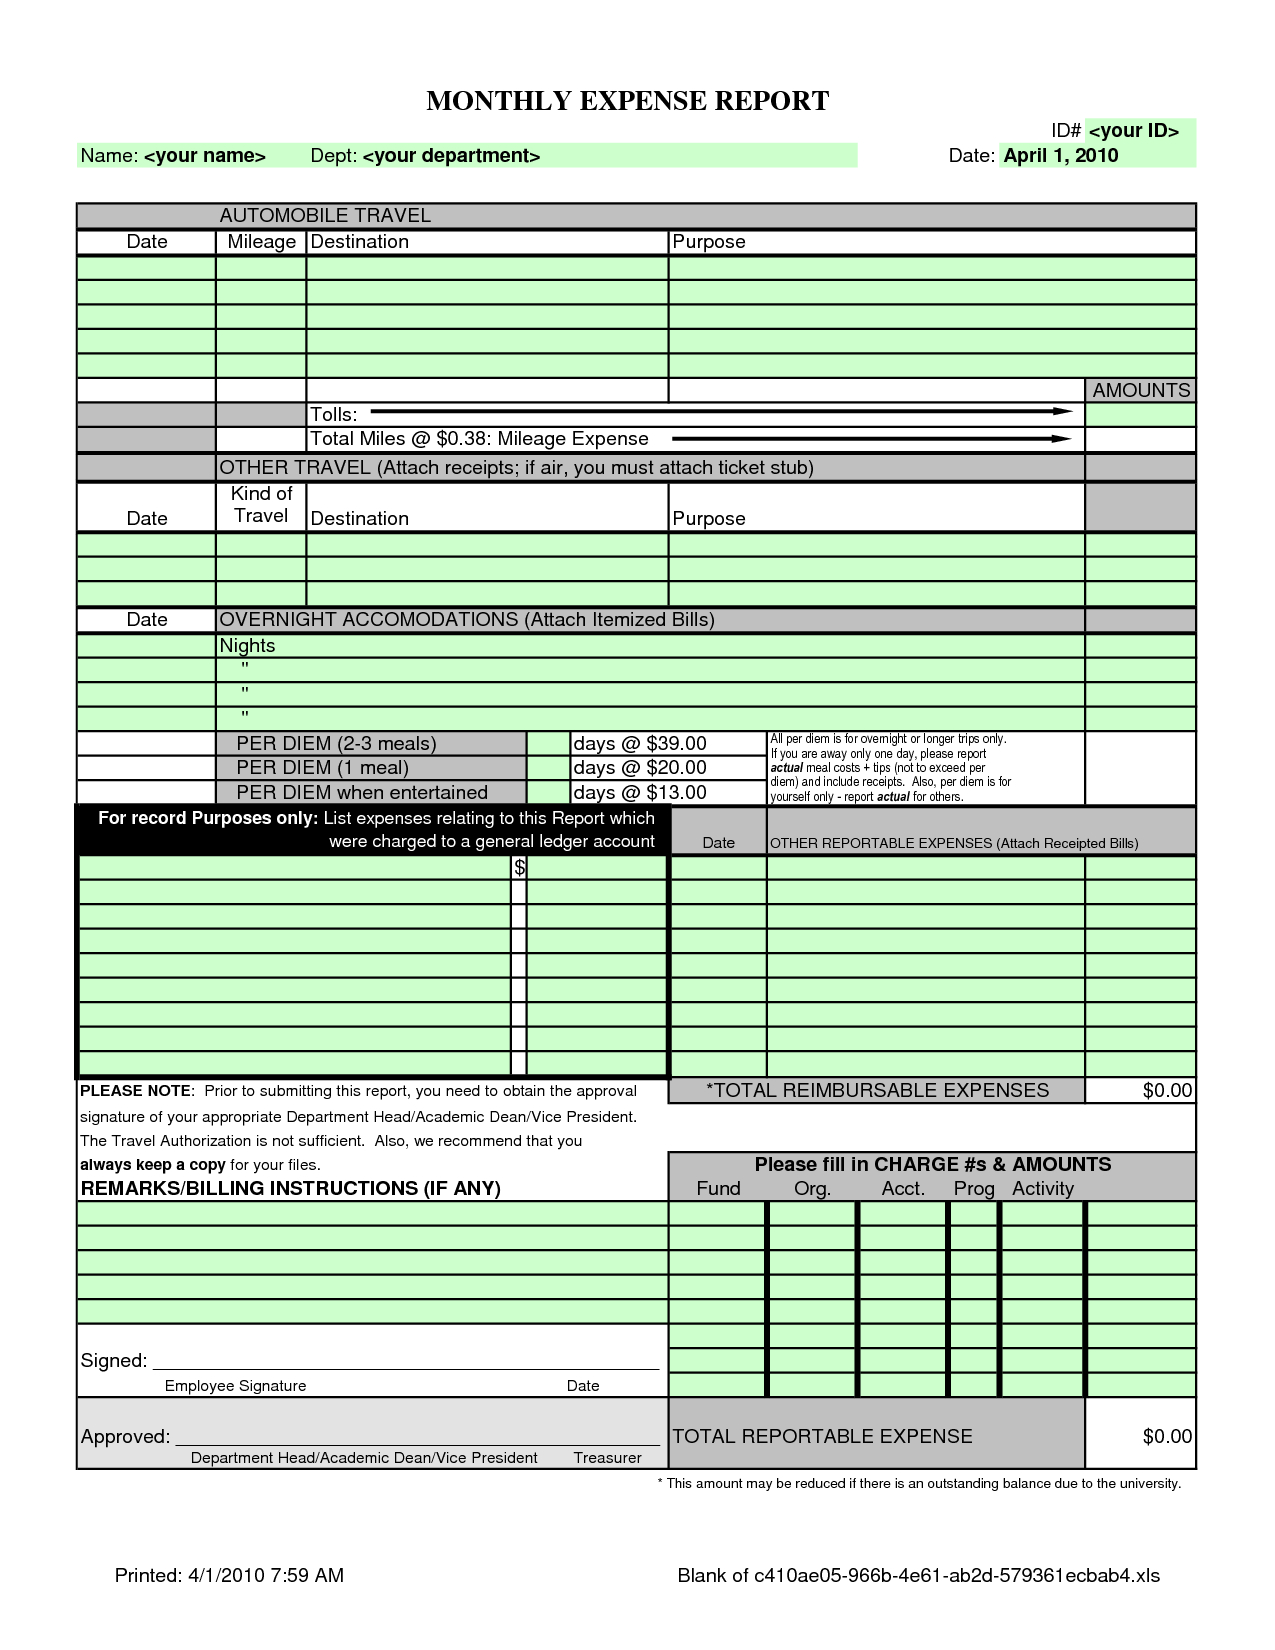 Excel Spreadsheet For Monthly Business Expenses Download Free In Excel Spreadsheet For Business Expenses